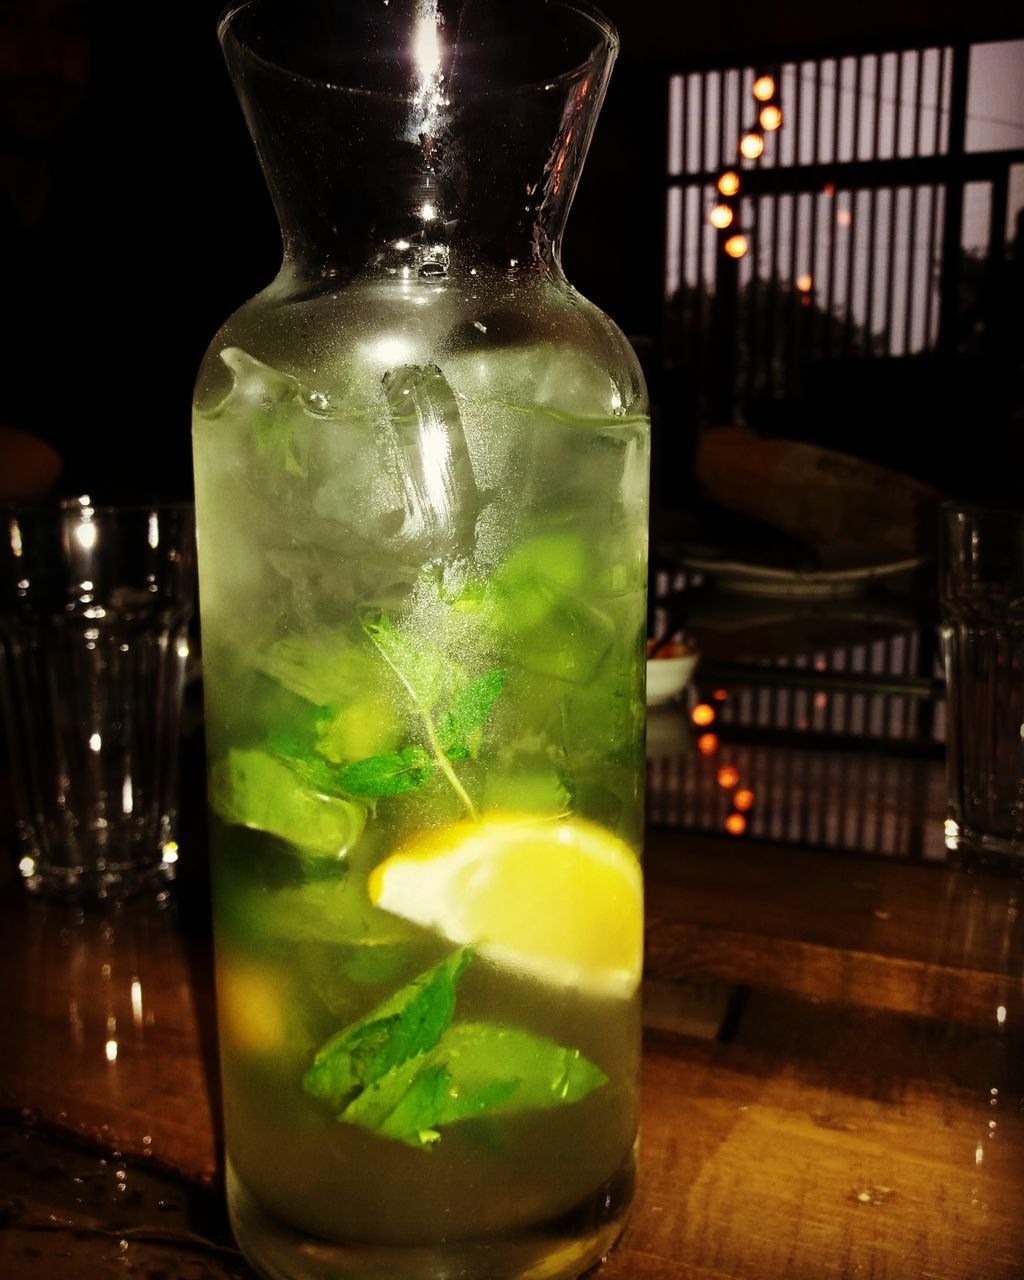 drink, refreshment, table, drinking glass, bottle, indoors, green color, alcohol, food and drink, no people, cocktail, freshness, close-up, liquid, mint leaf - culinary, mojito, night, liqueur